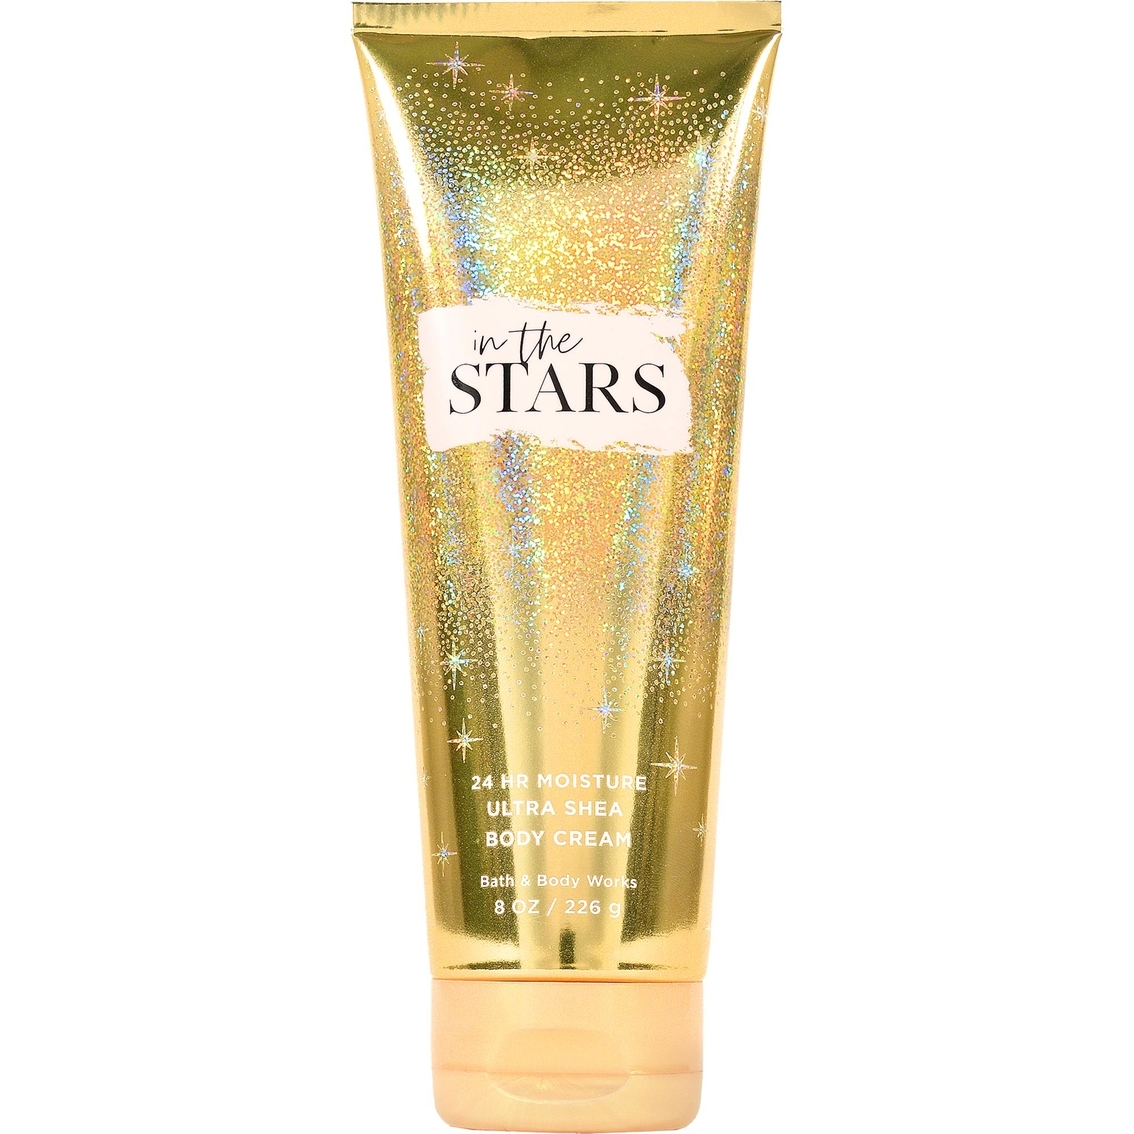 Крем для тела Bath&BodyWorks In The Stars 226 гр